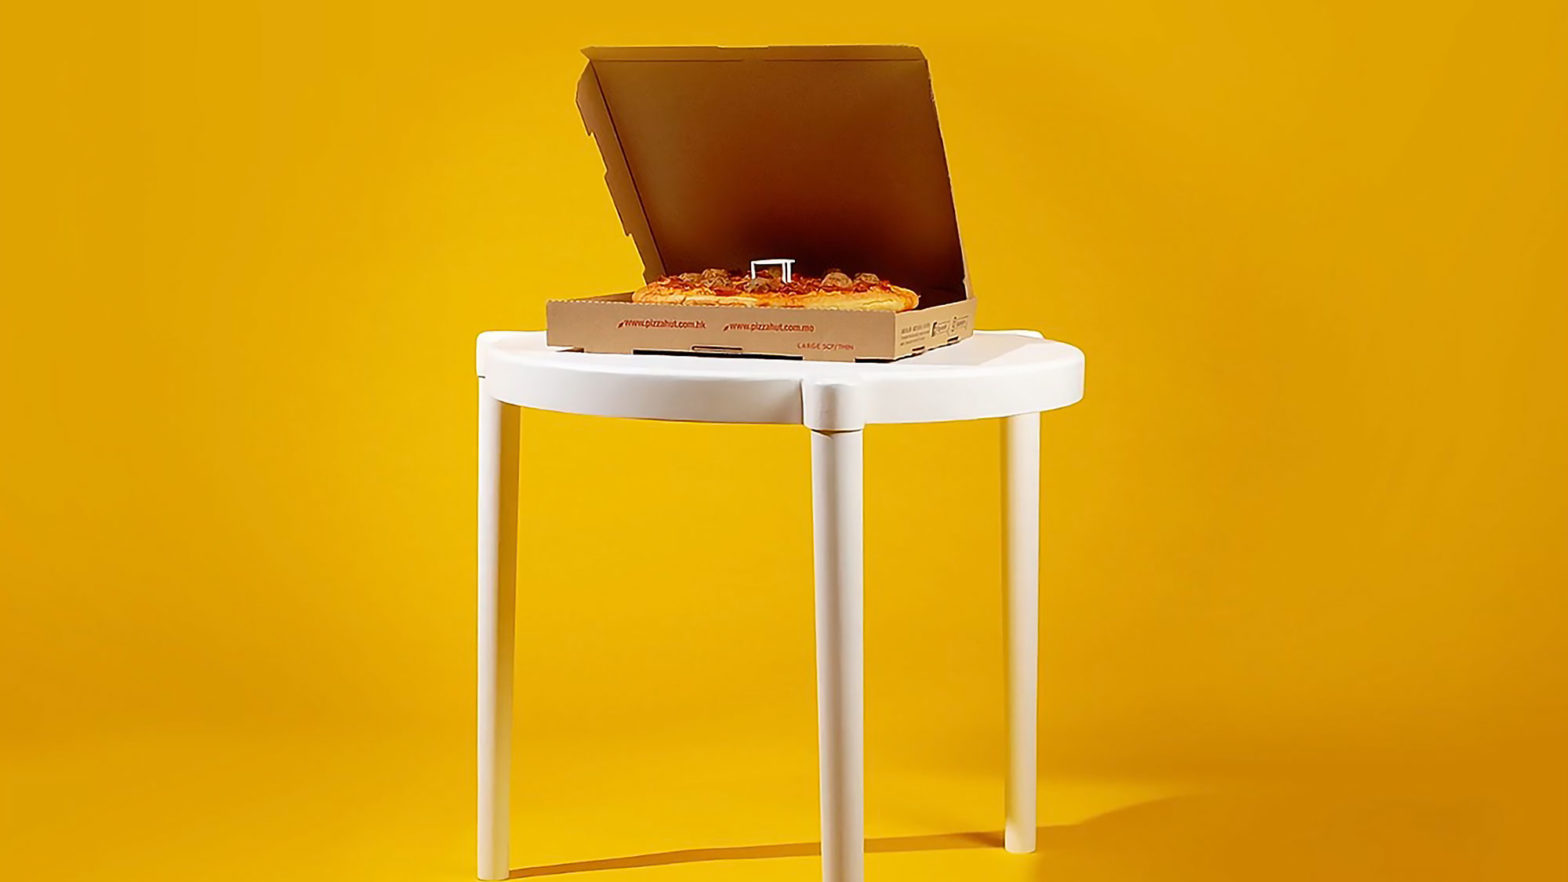 Pizza Hut x IKEA Table And Pizza